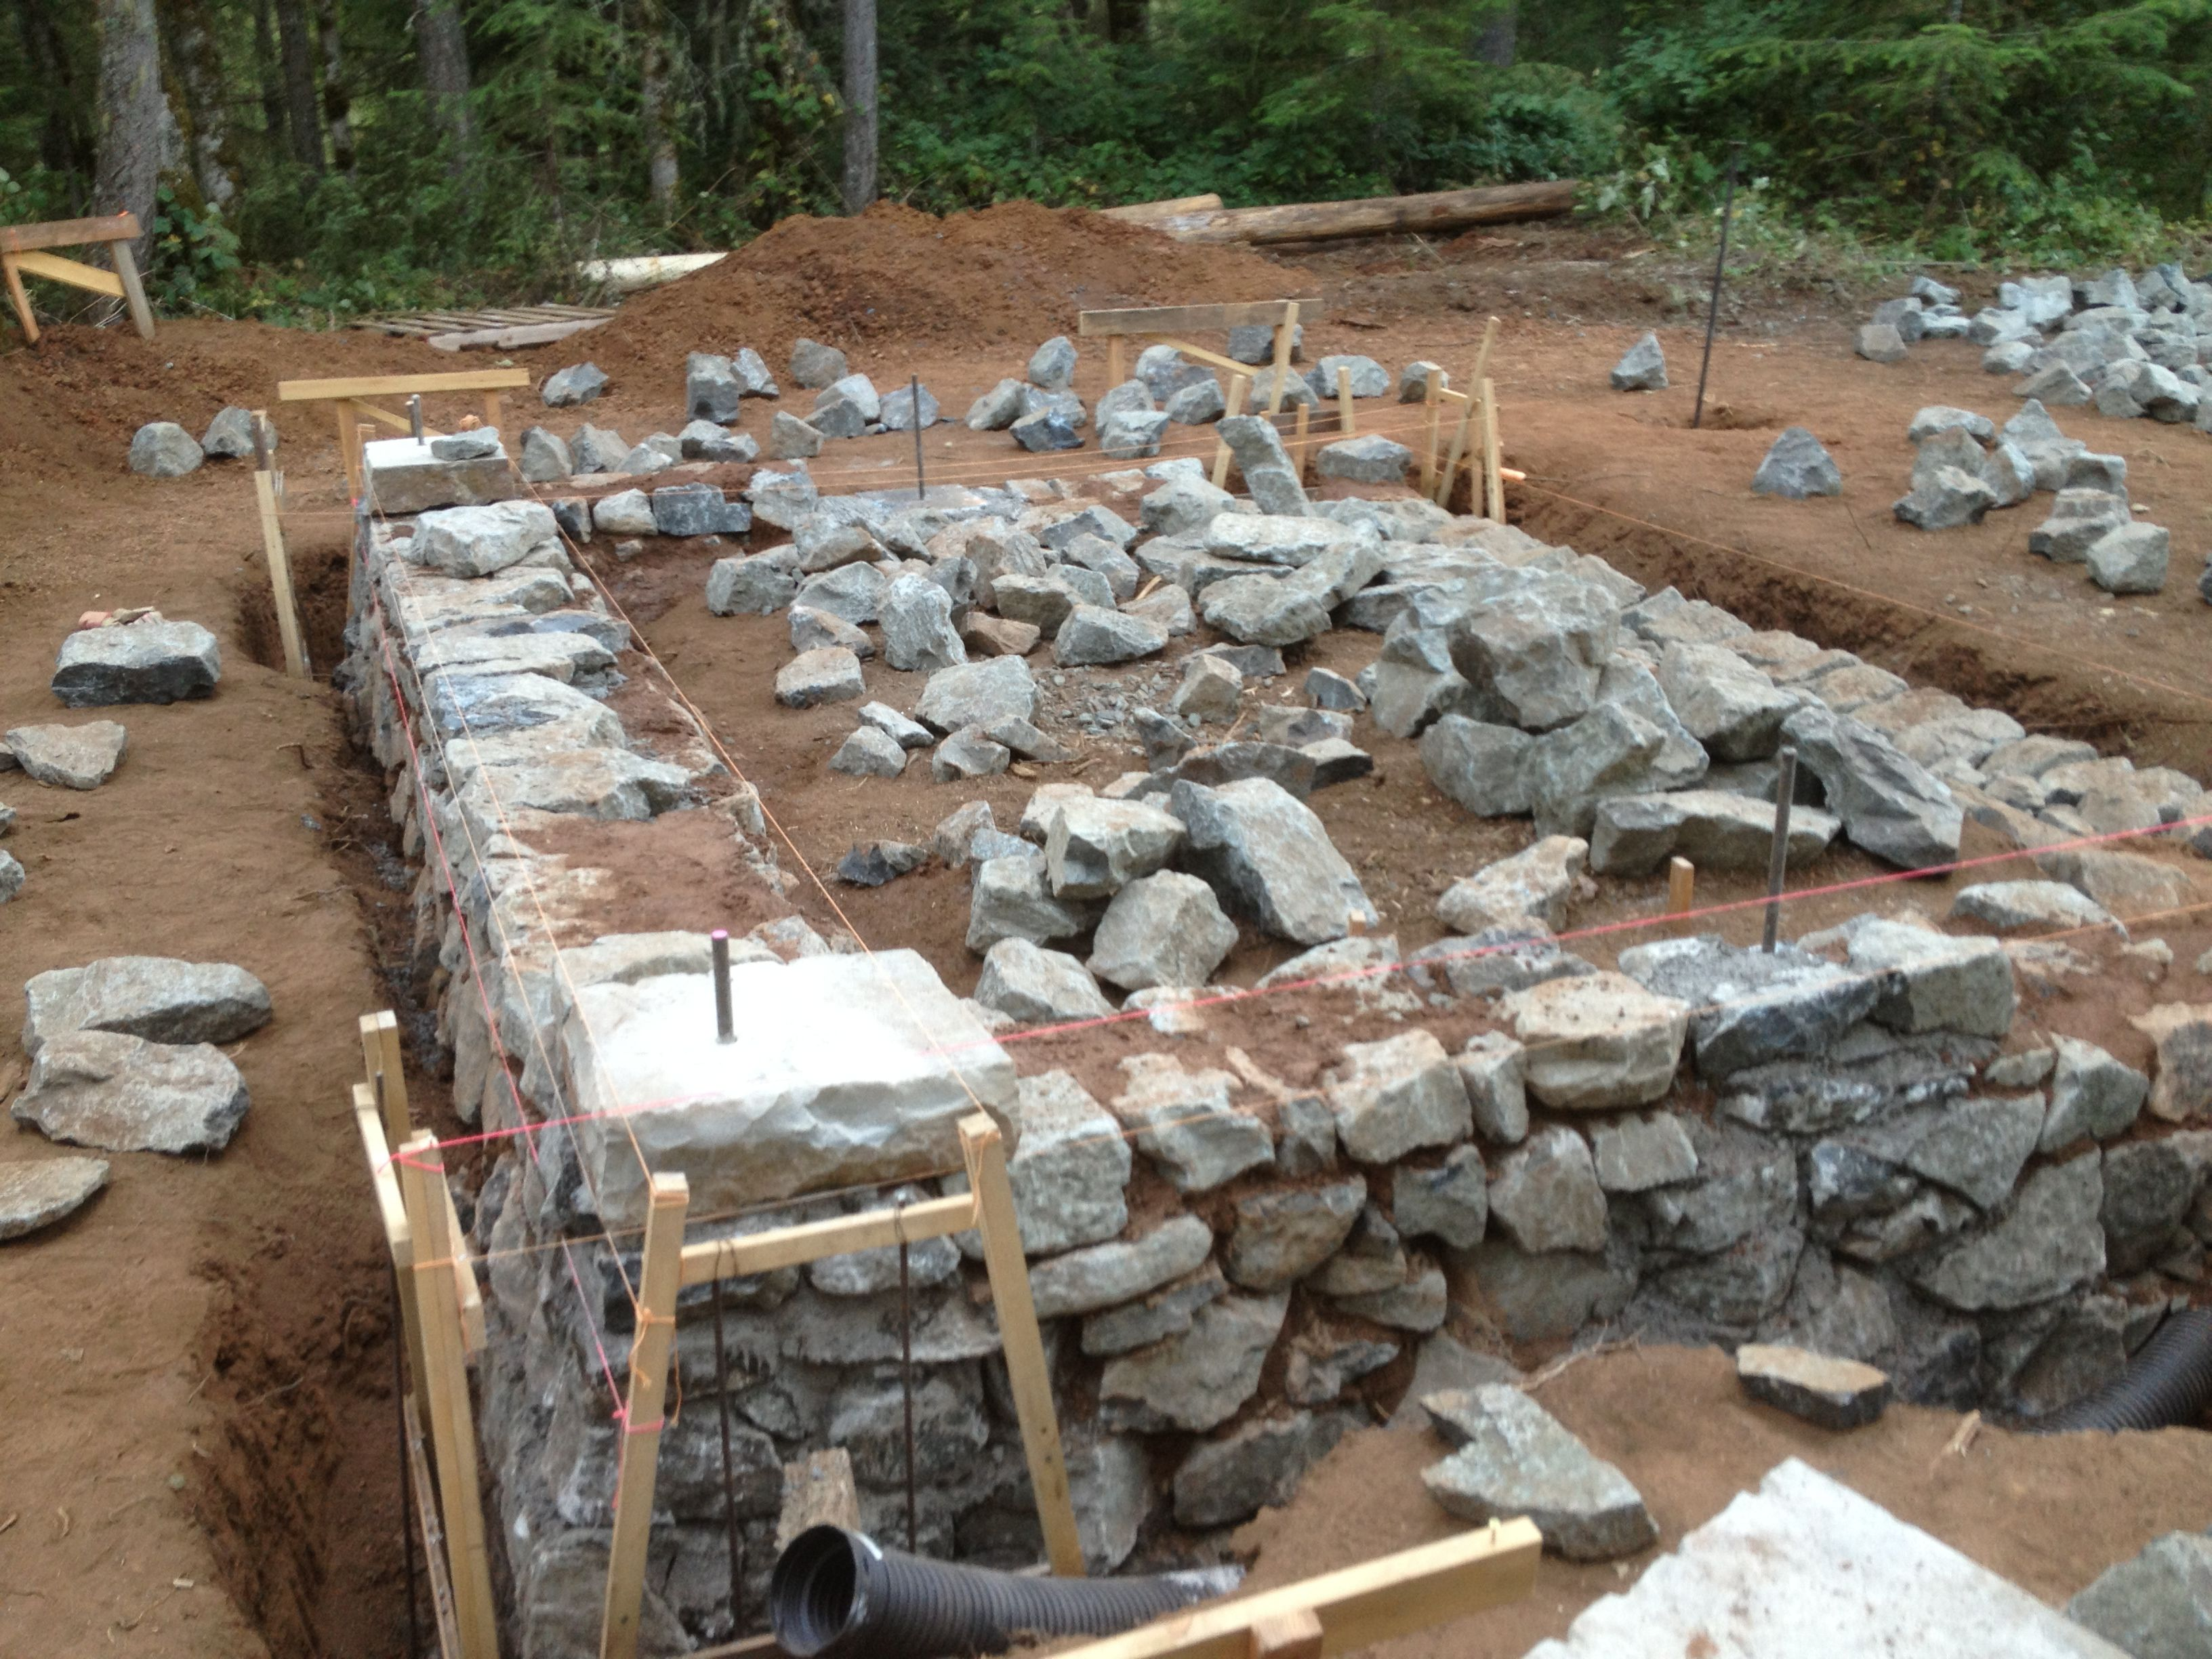 Attractive Foundation For Homes #9: Alternative Building Methods Are A Great Way For The DIYu0027er Out There To  Live In A Low Cost And Energy Efficient Home. A Diy Stone Foundation Works  Well Wit